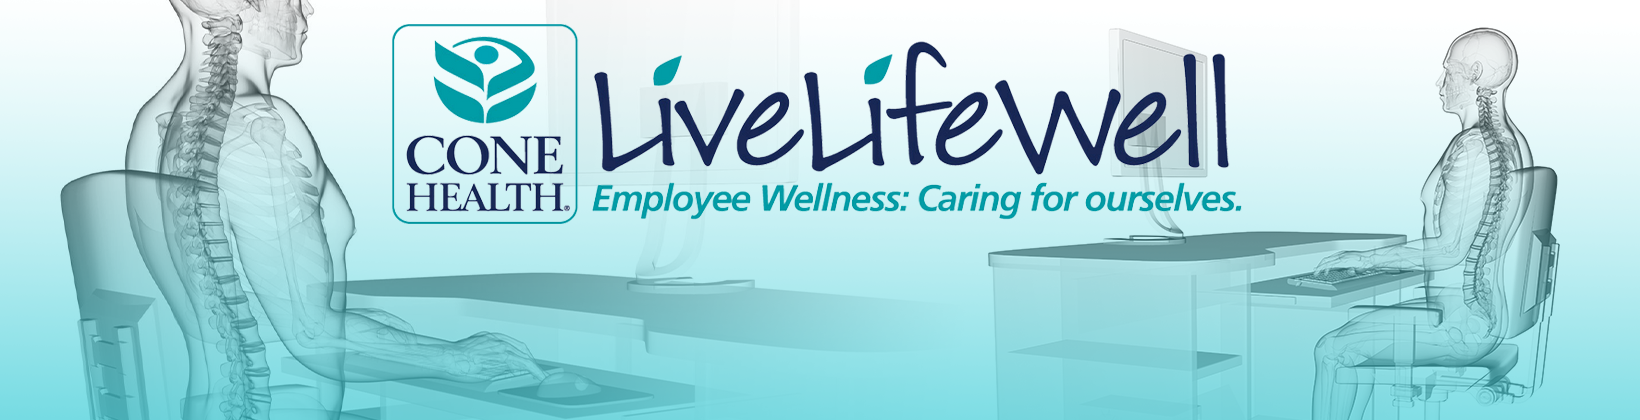 LiveLifeWell - Ergonomics for Employees